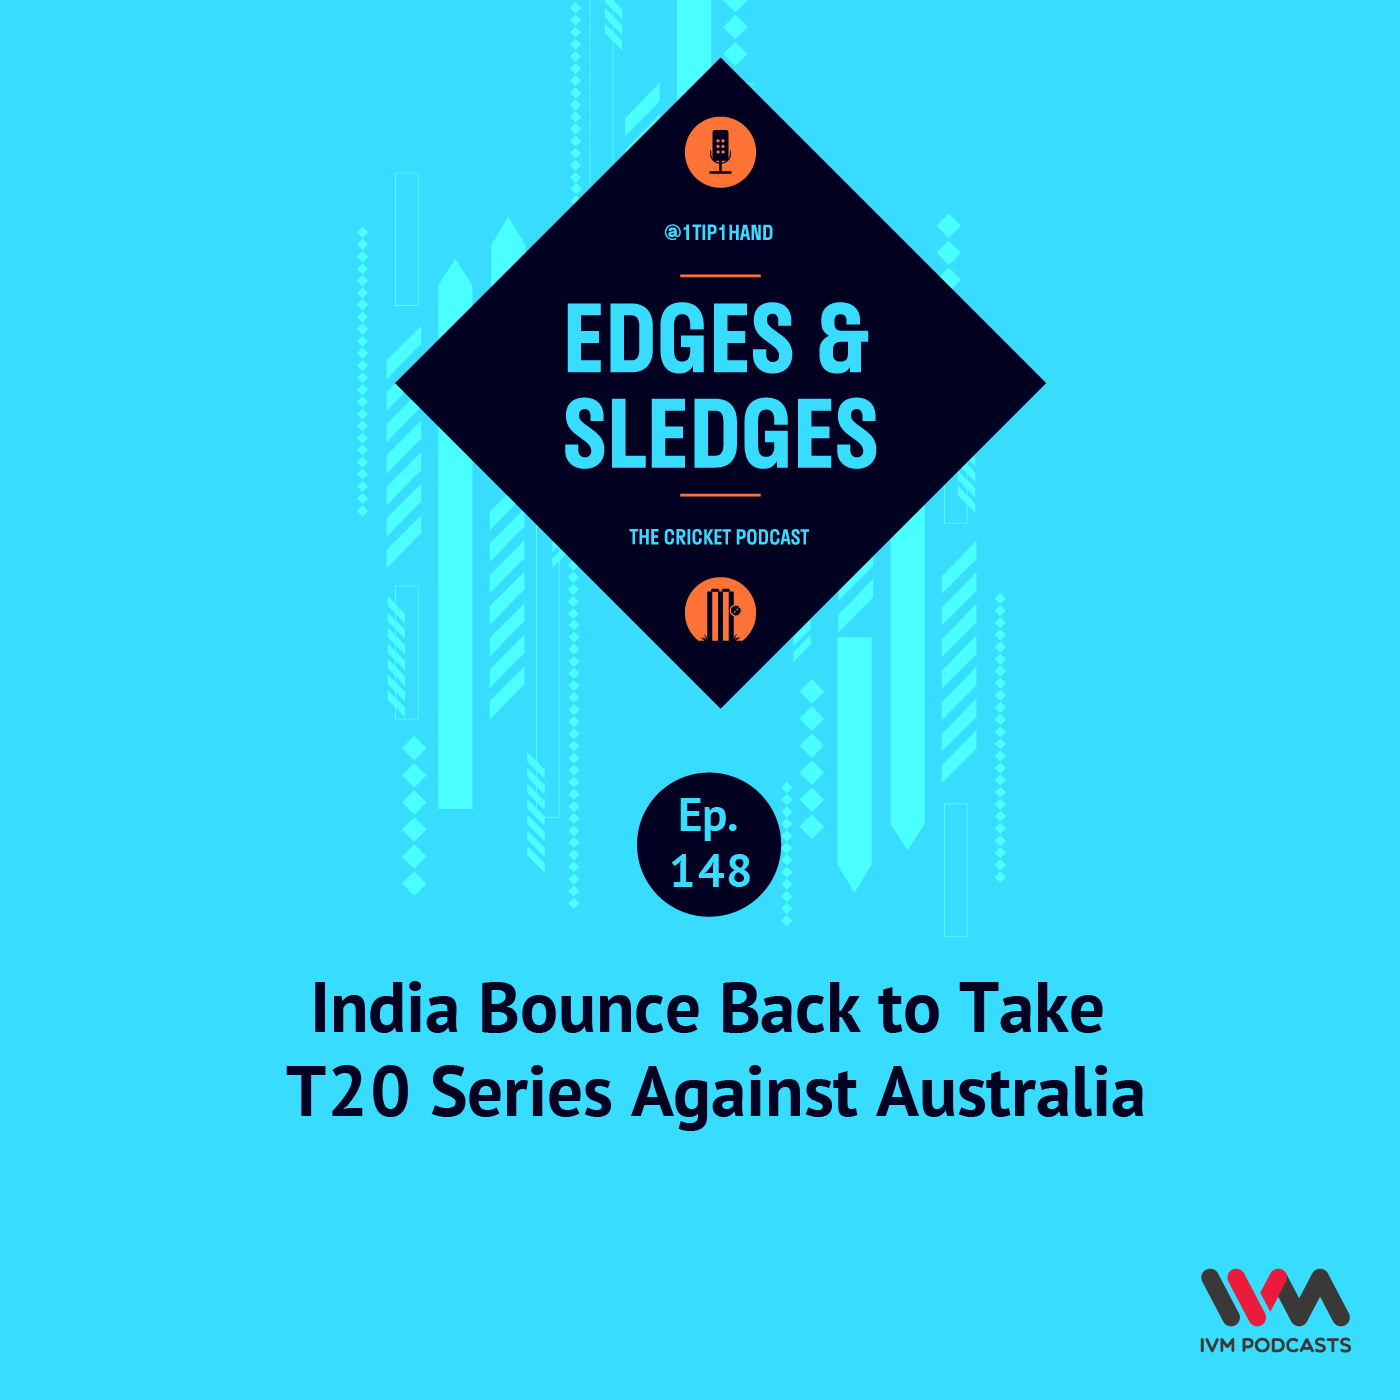 Ep. 148: India Bounce Back to Take T20 Series Against Australia